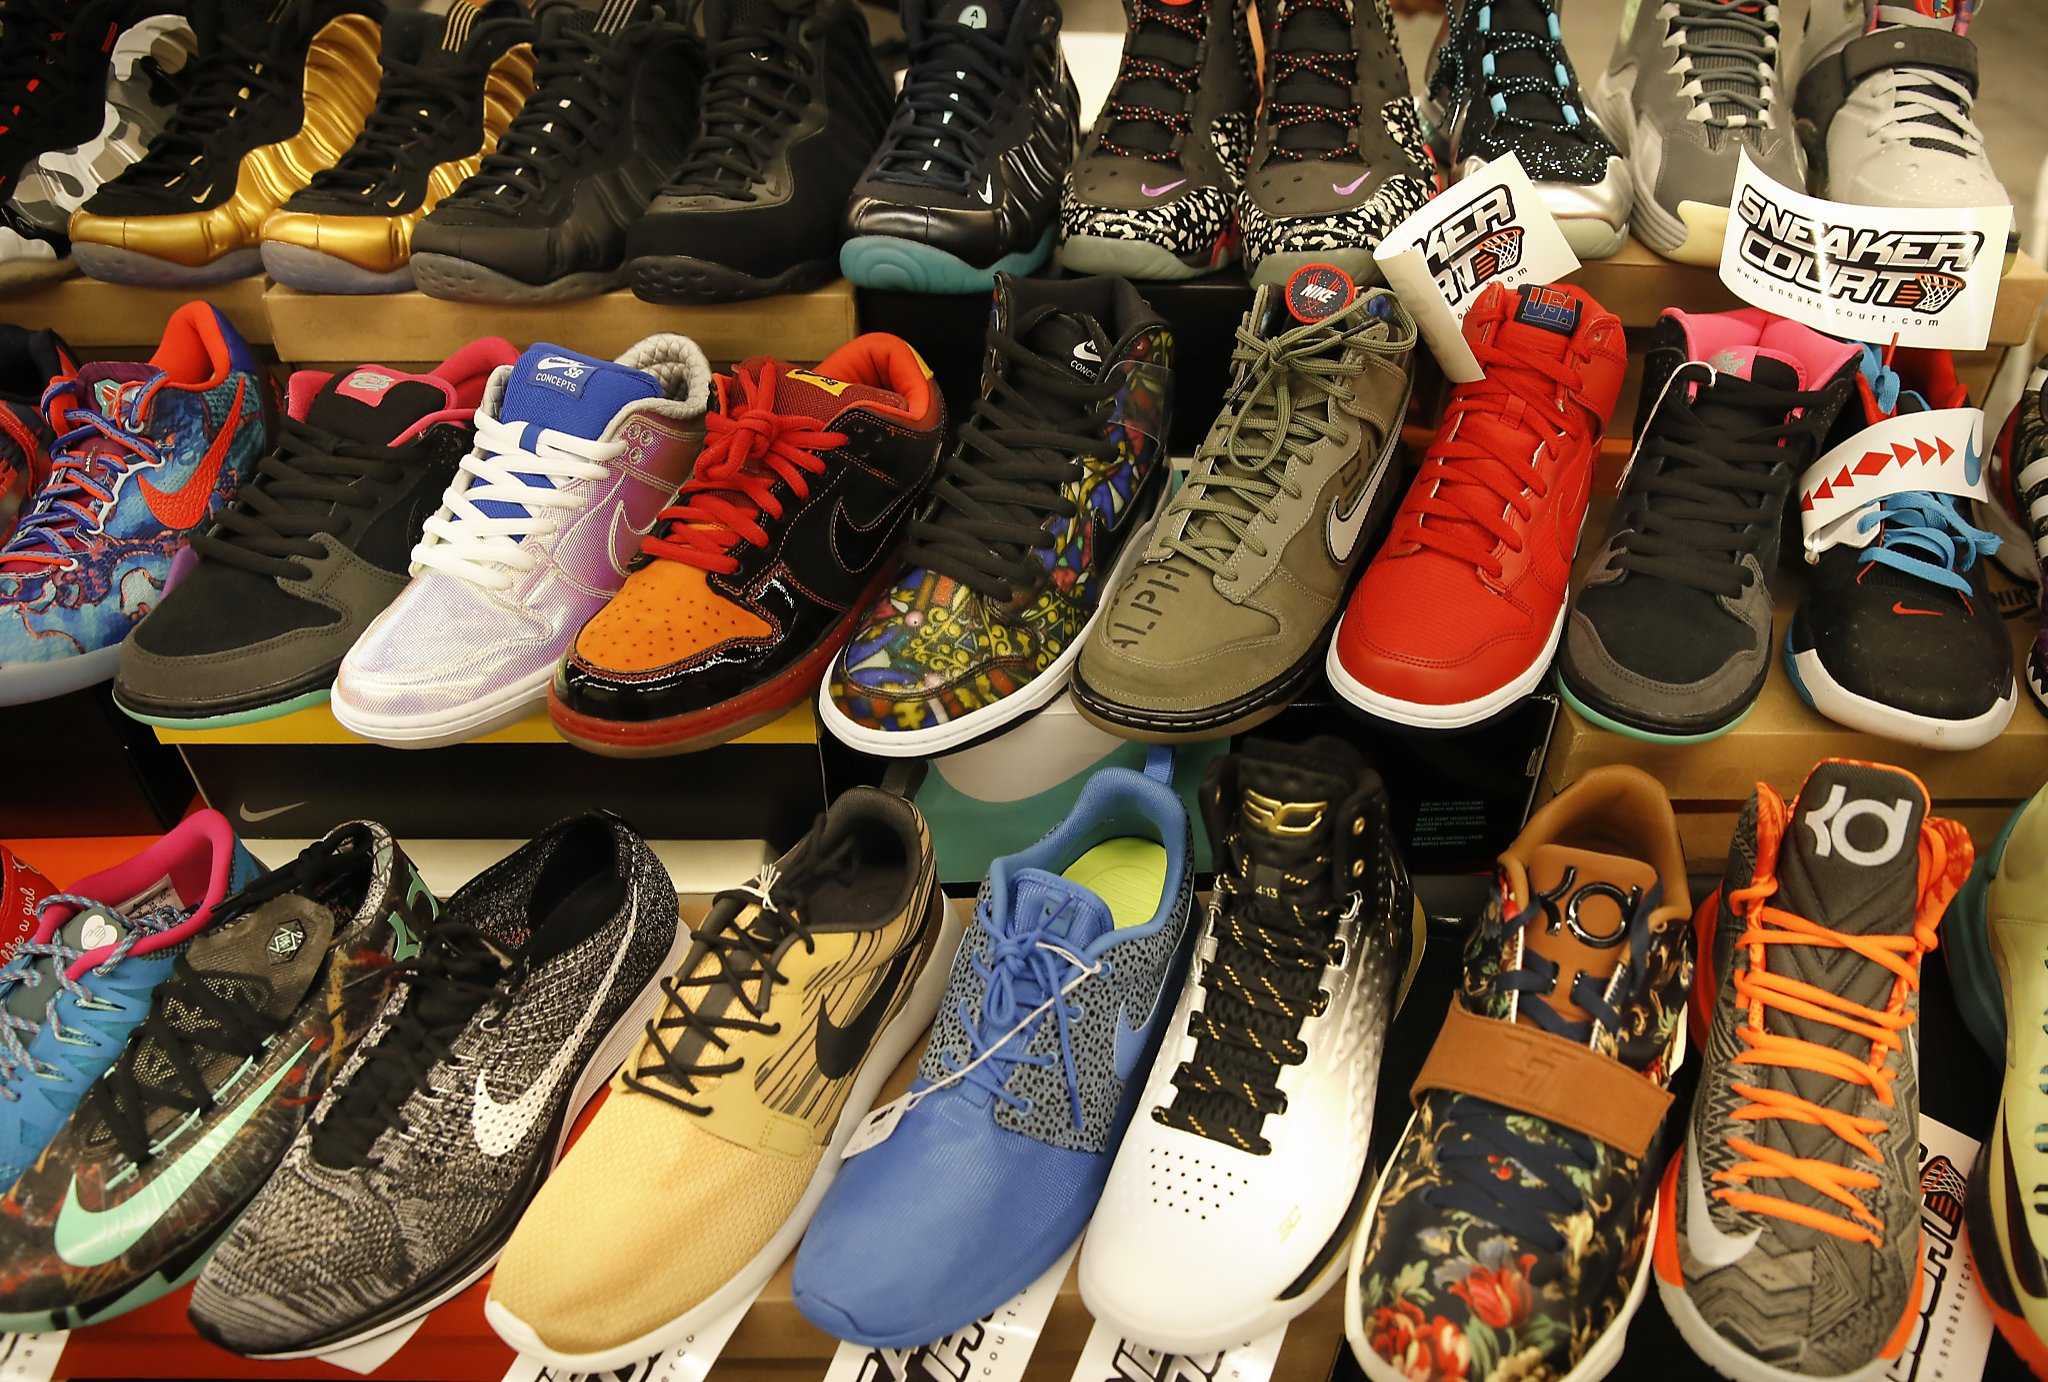 560d3f351d5c Meet the new sneakerheads - SFChronicle.com